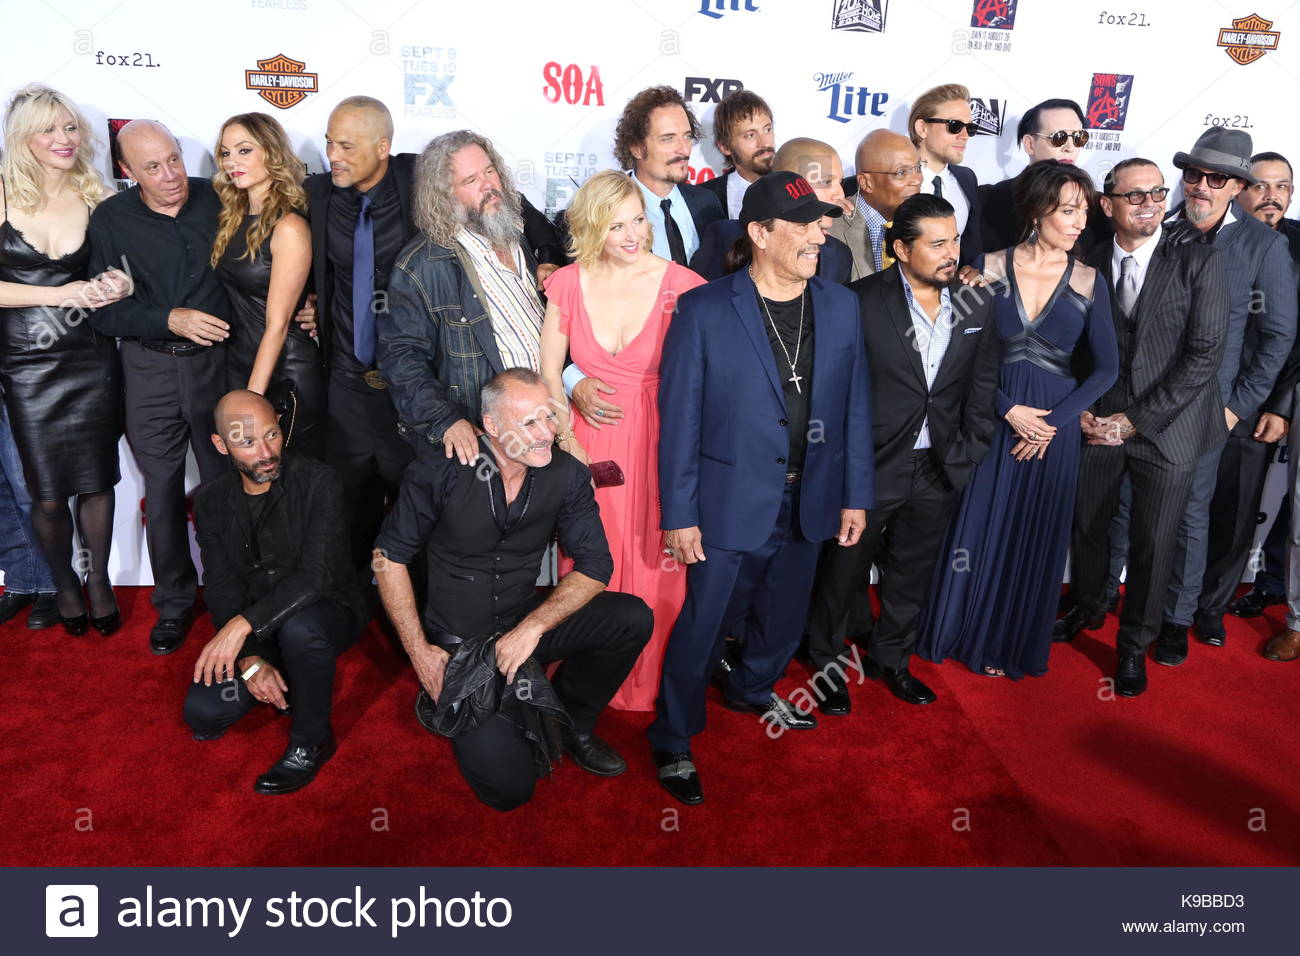 Sons of anarchy stock photos sons of anarchy stock images alamy sons of anarchy cast sons of anarchy final season premiere in hollywood stock kristyandbryce Choice Image